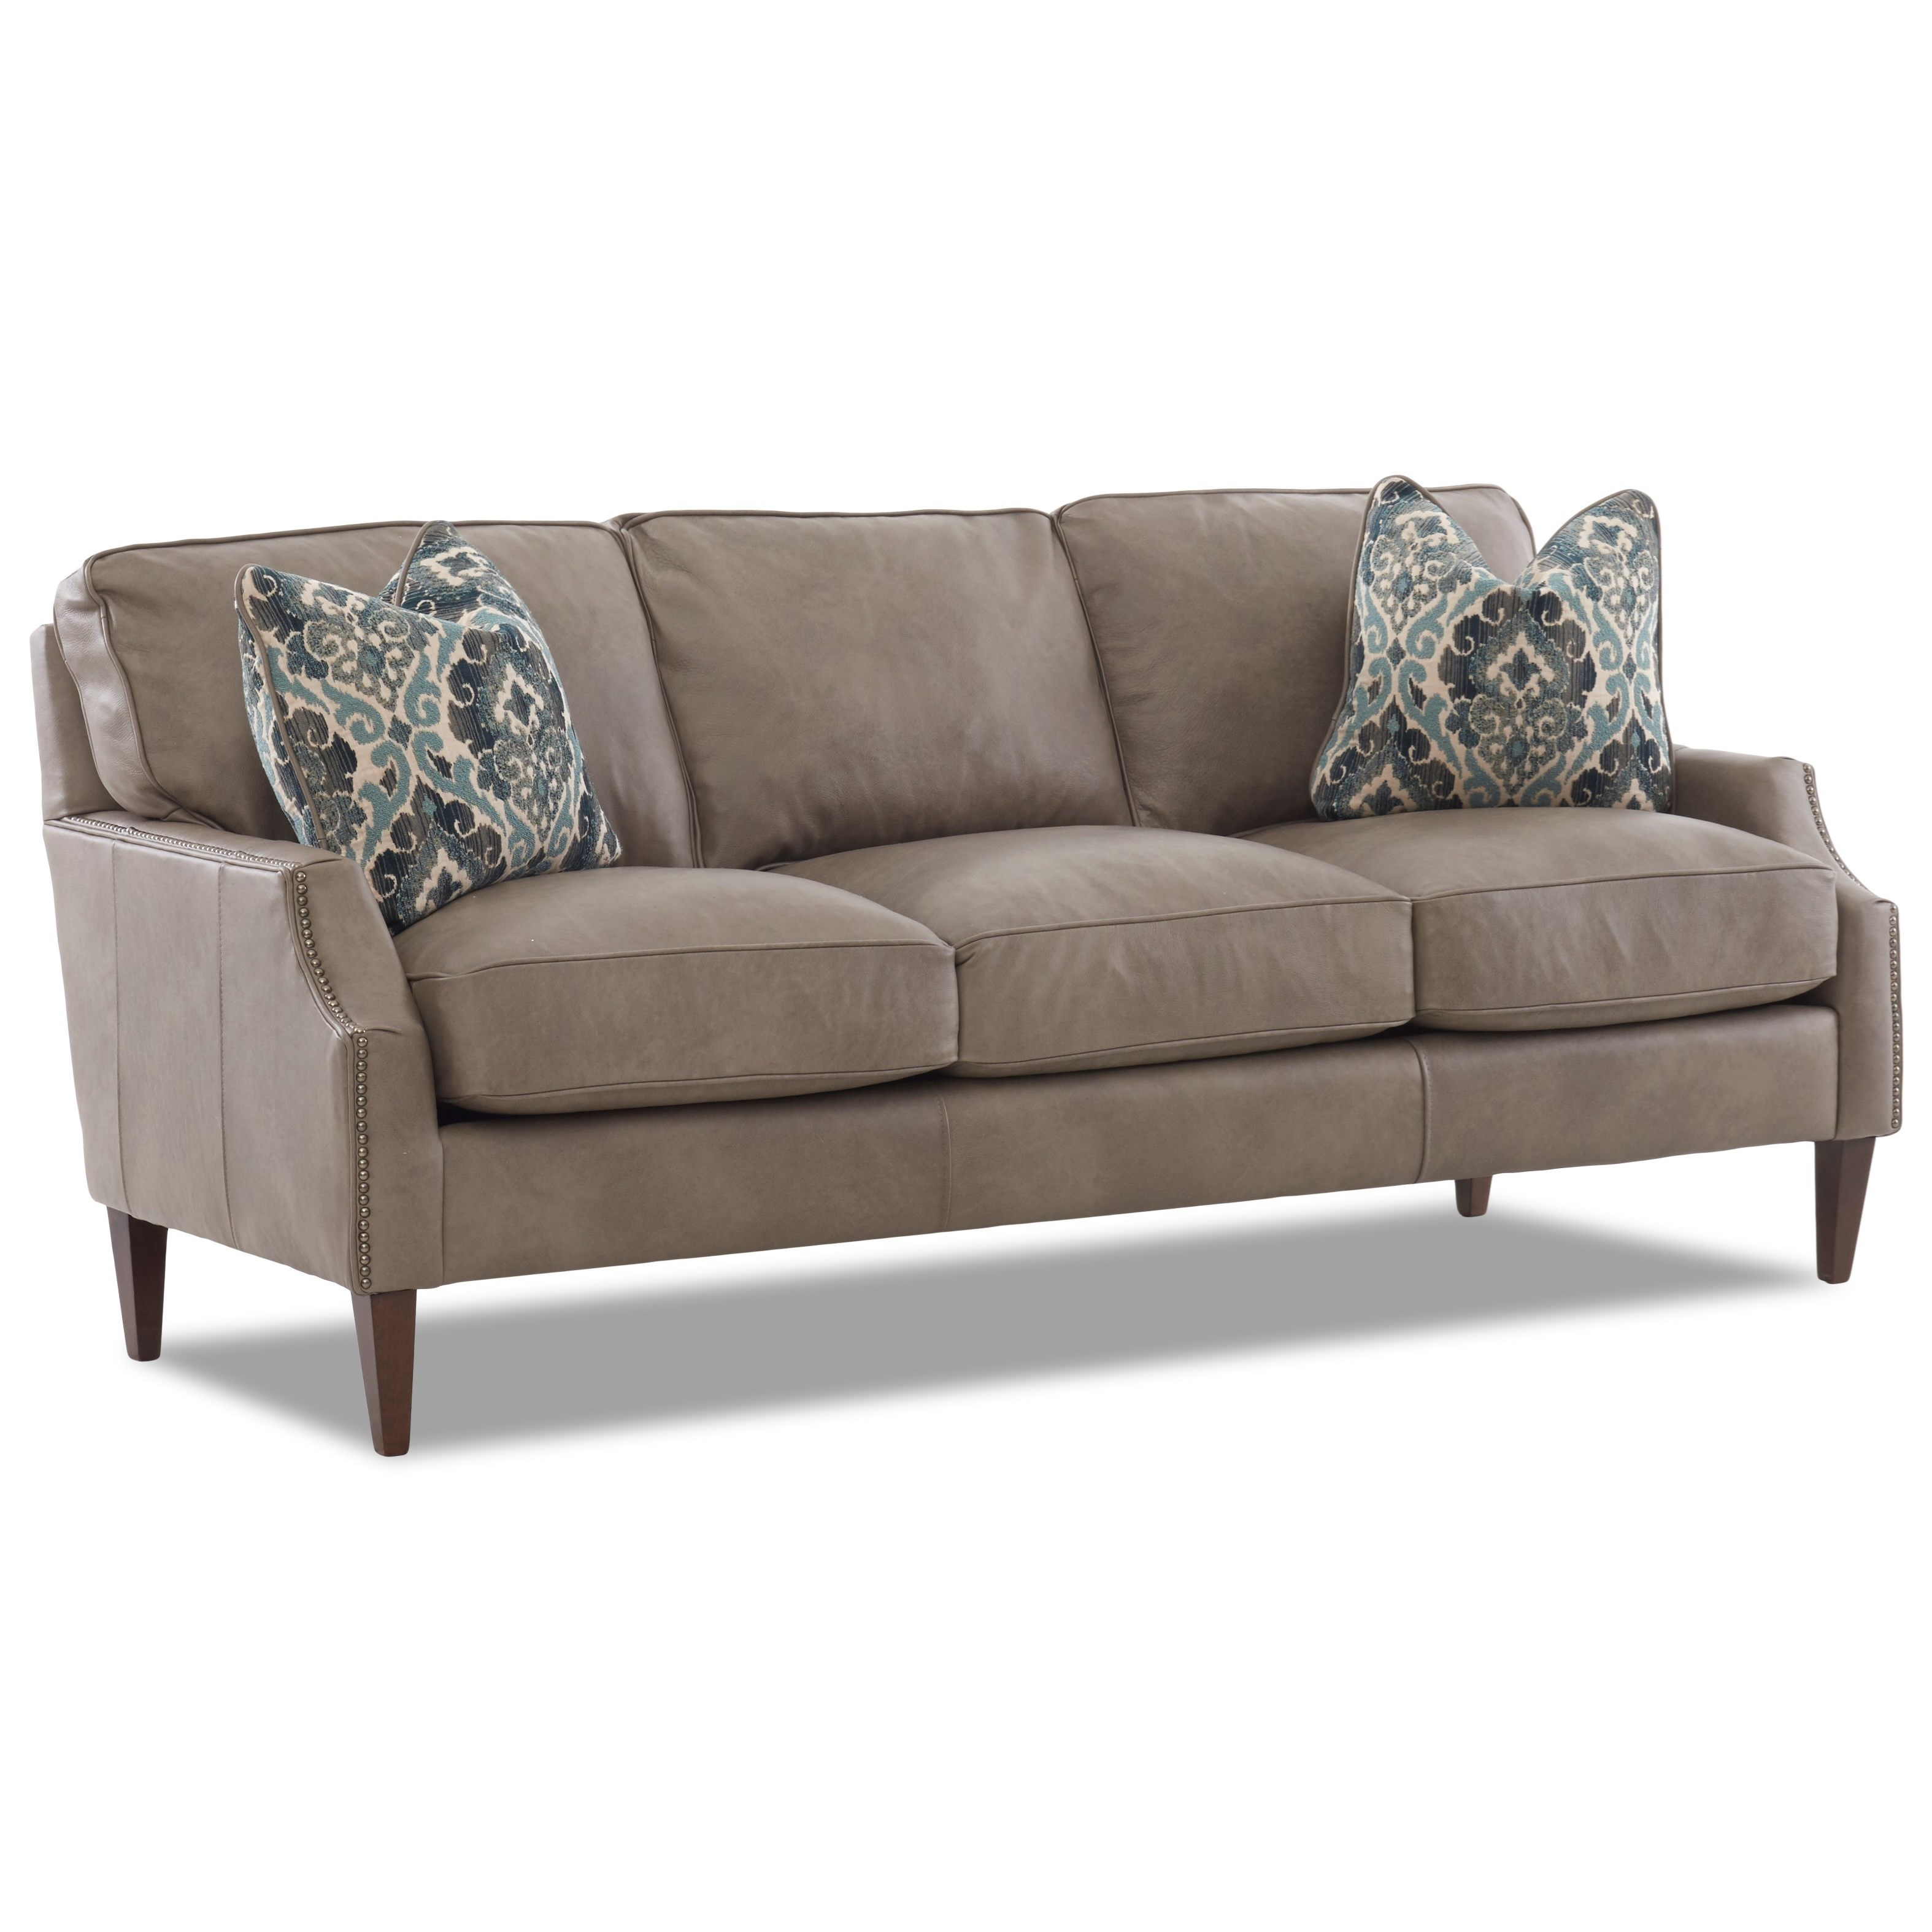 Leather Sofa with Arm Pillows